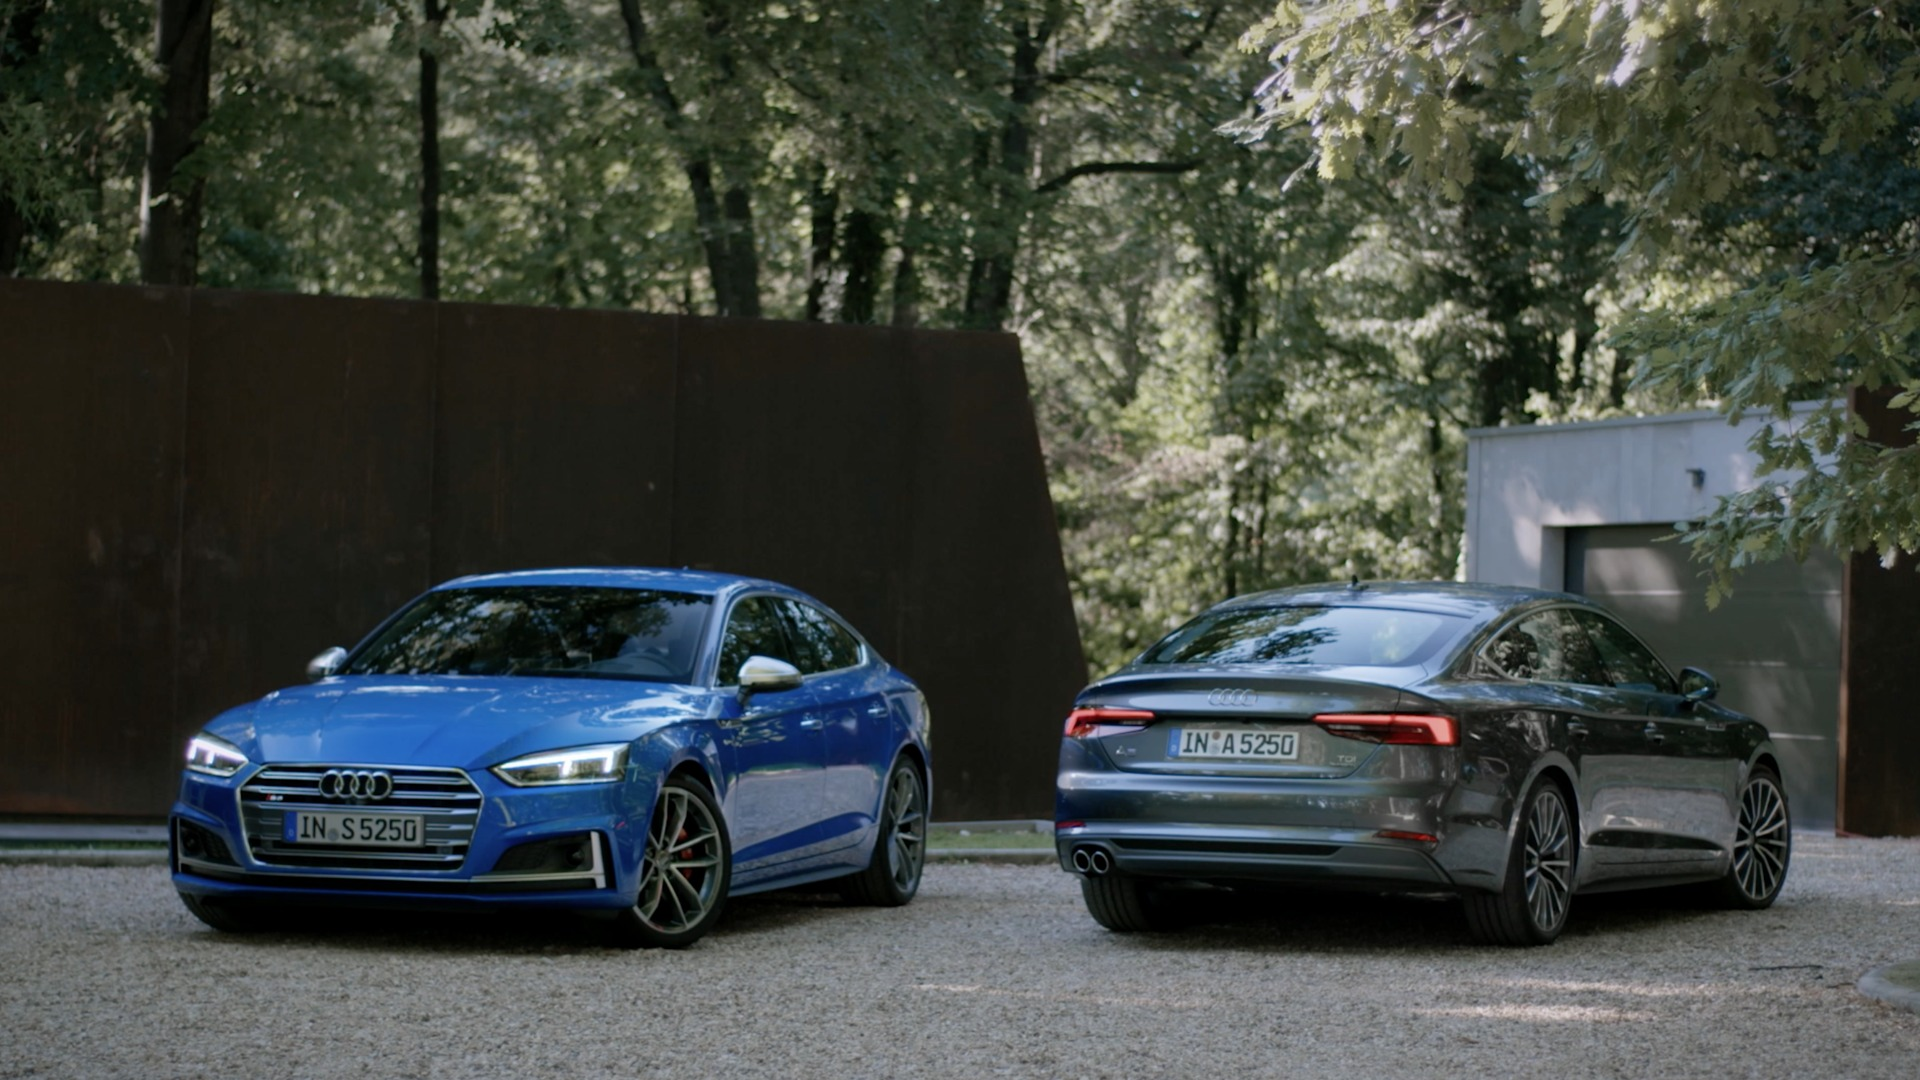 The new Audi A5 and S5 Sportback - Trailer